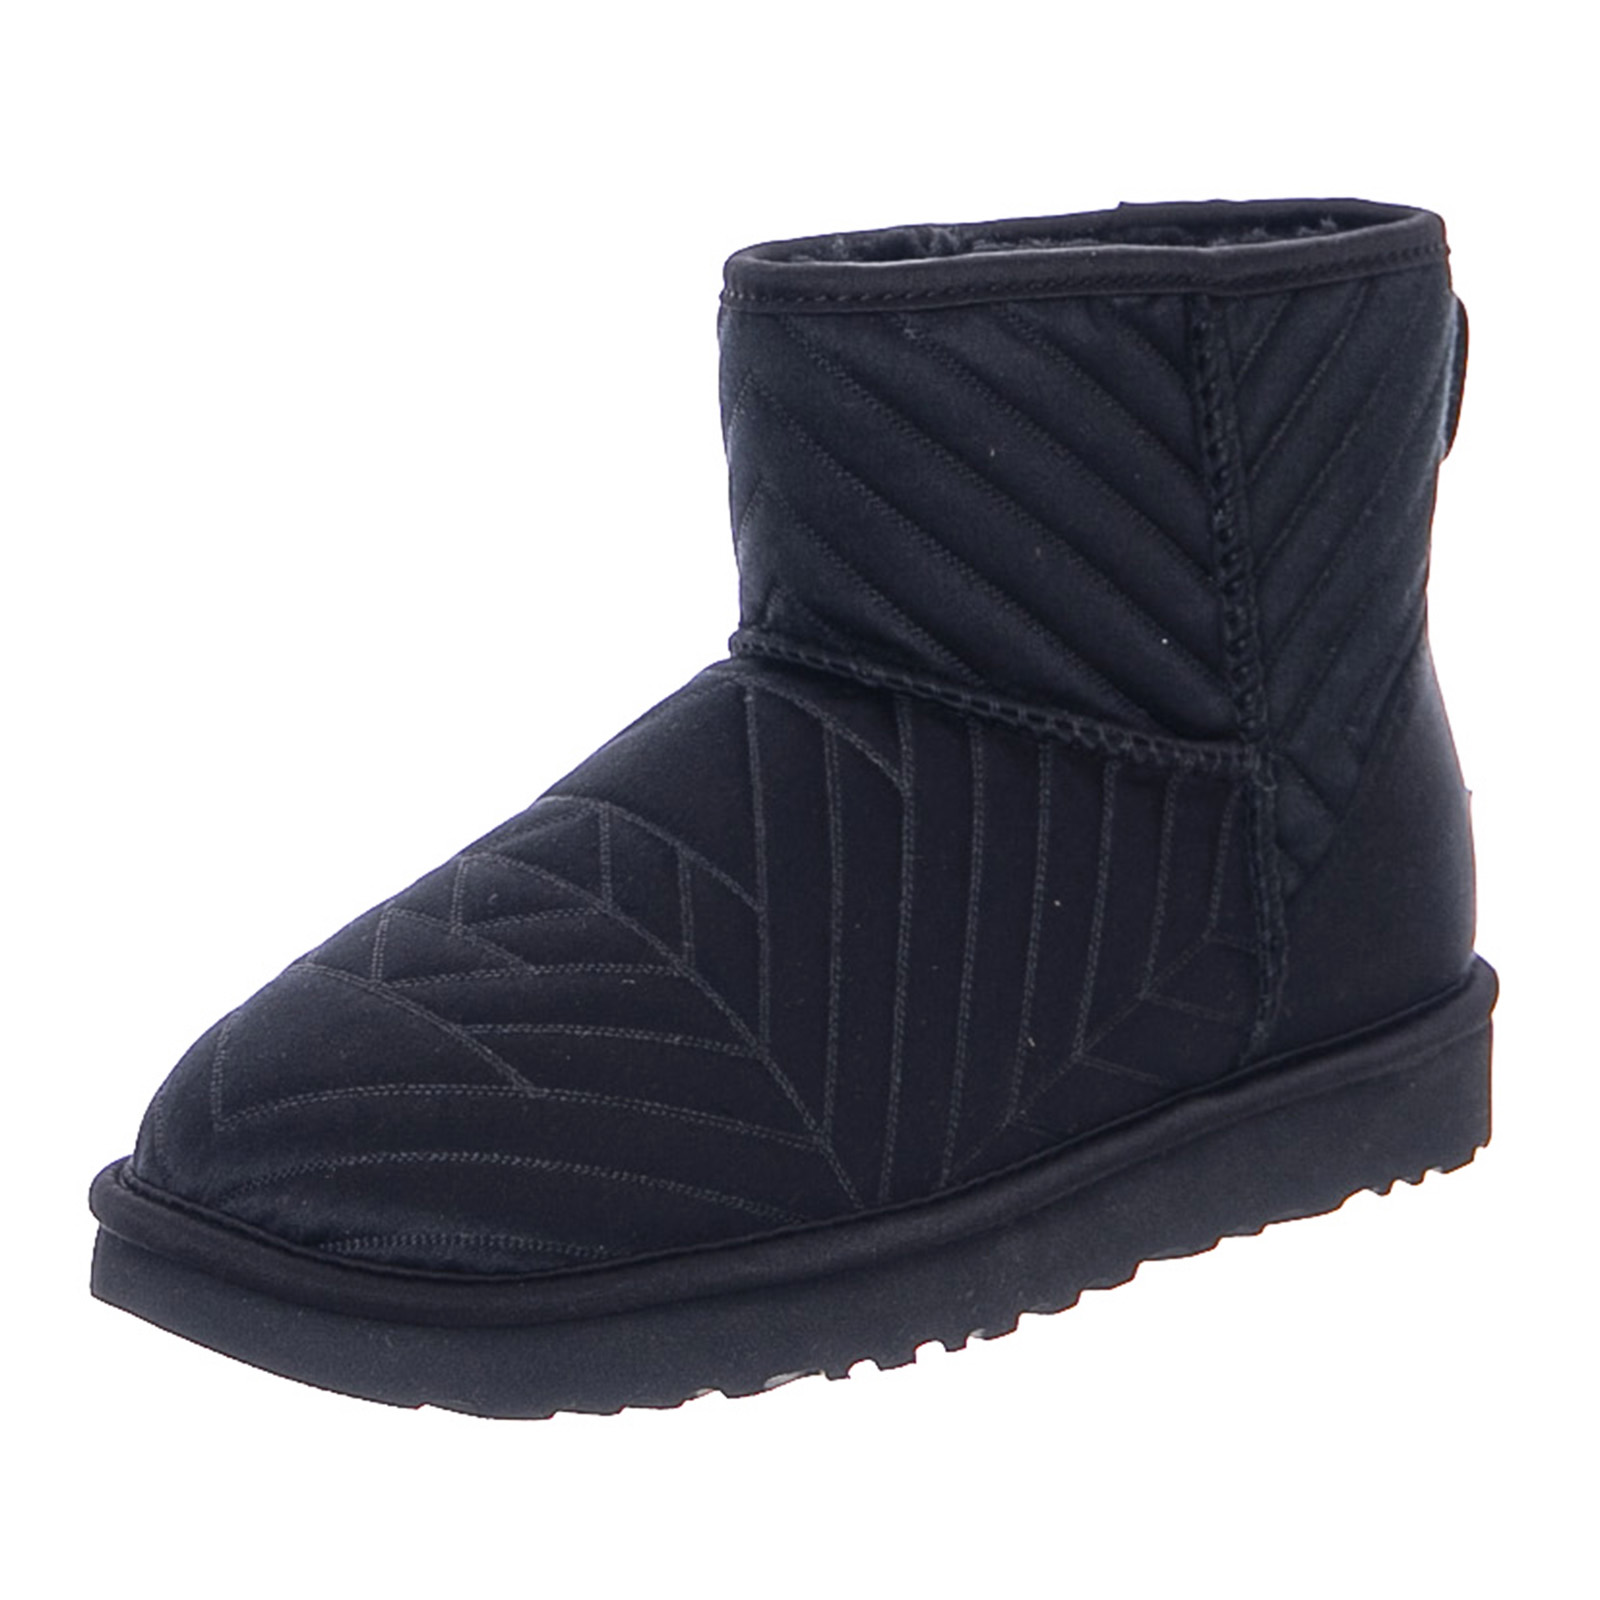 Ugg Classic Mini Quilted Satin Boot Black Womens Boots Black Ebay